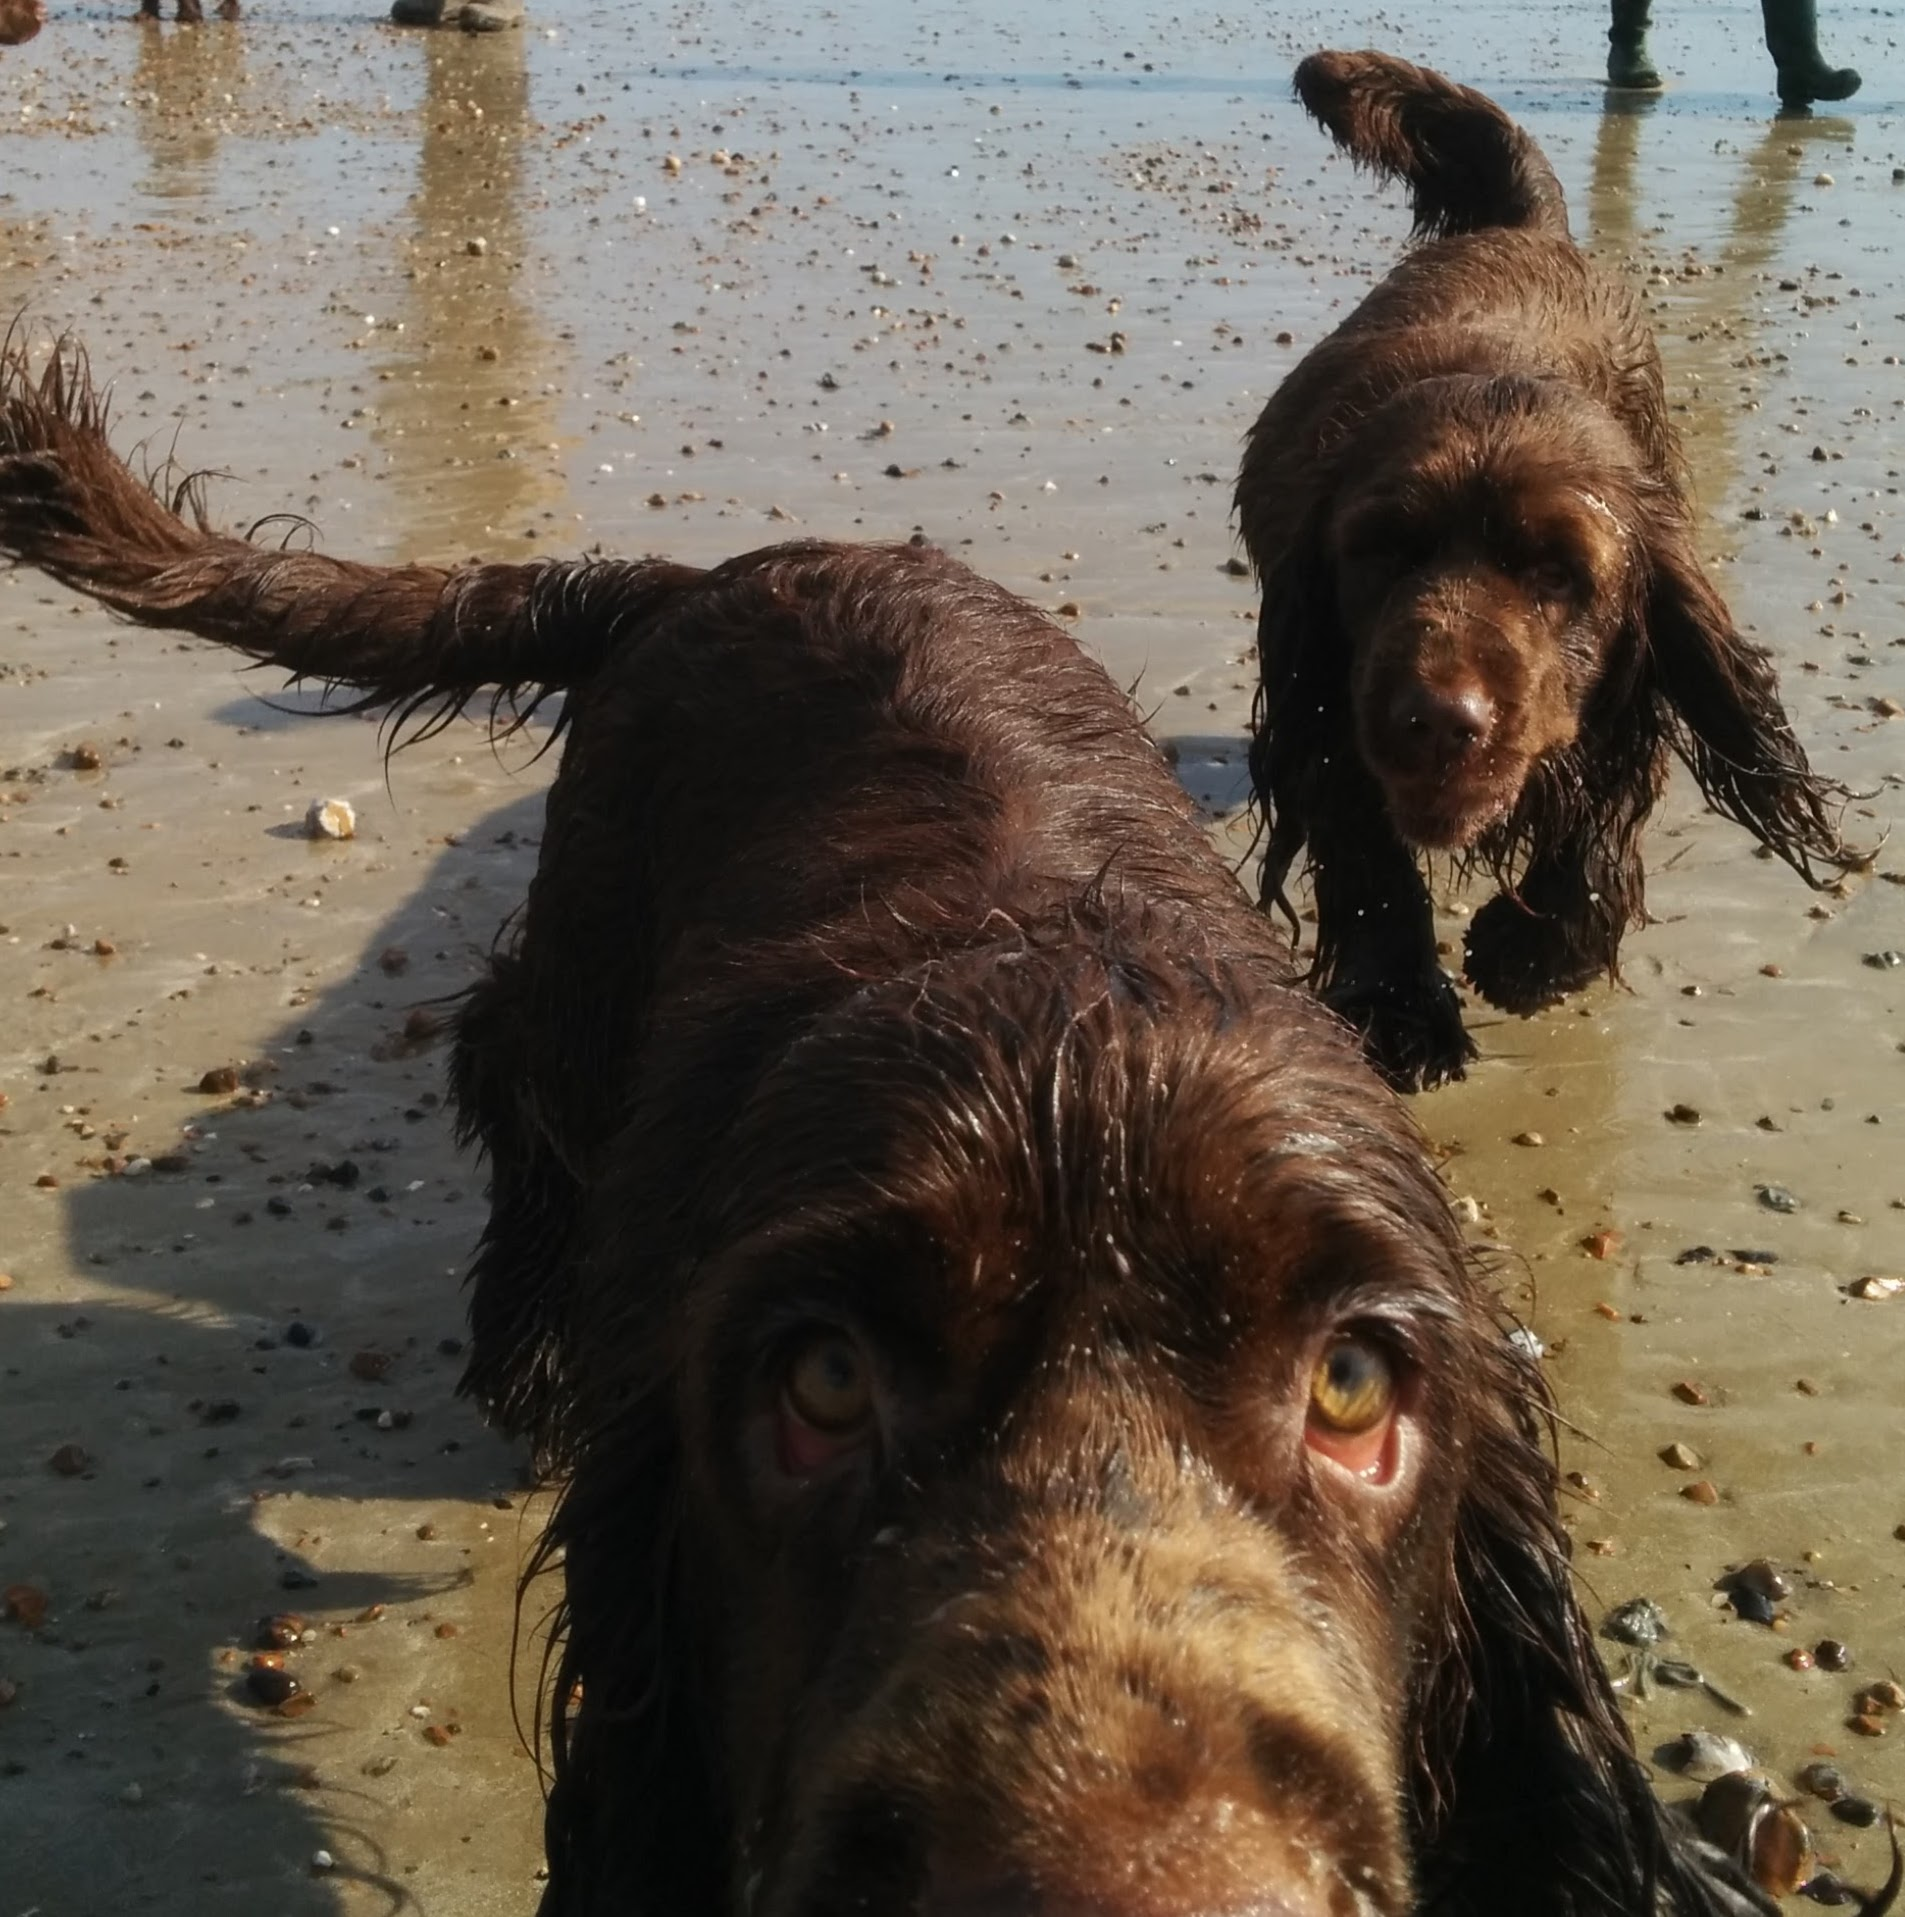 Close up of a Sussex Spaniel dog's snout with a second dog behind.